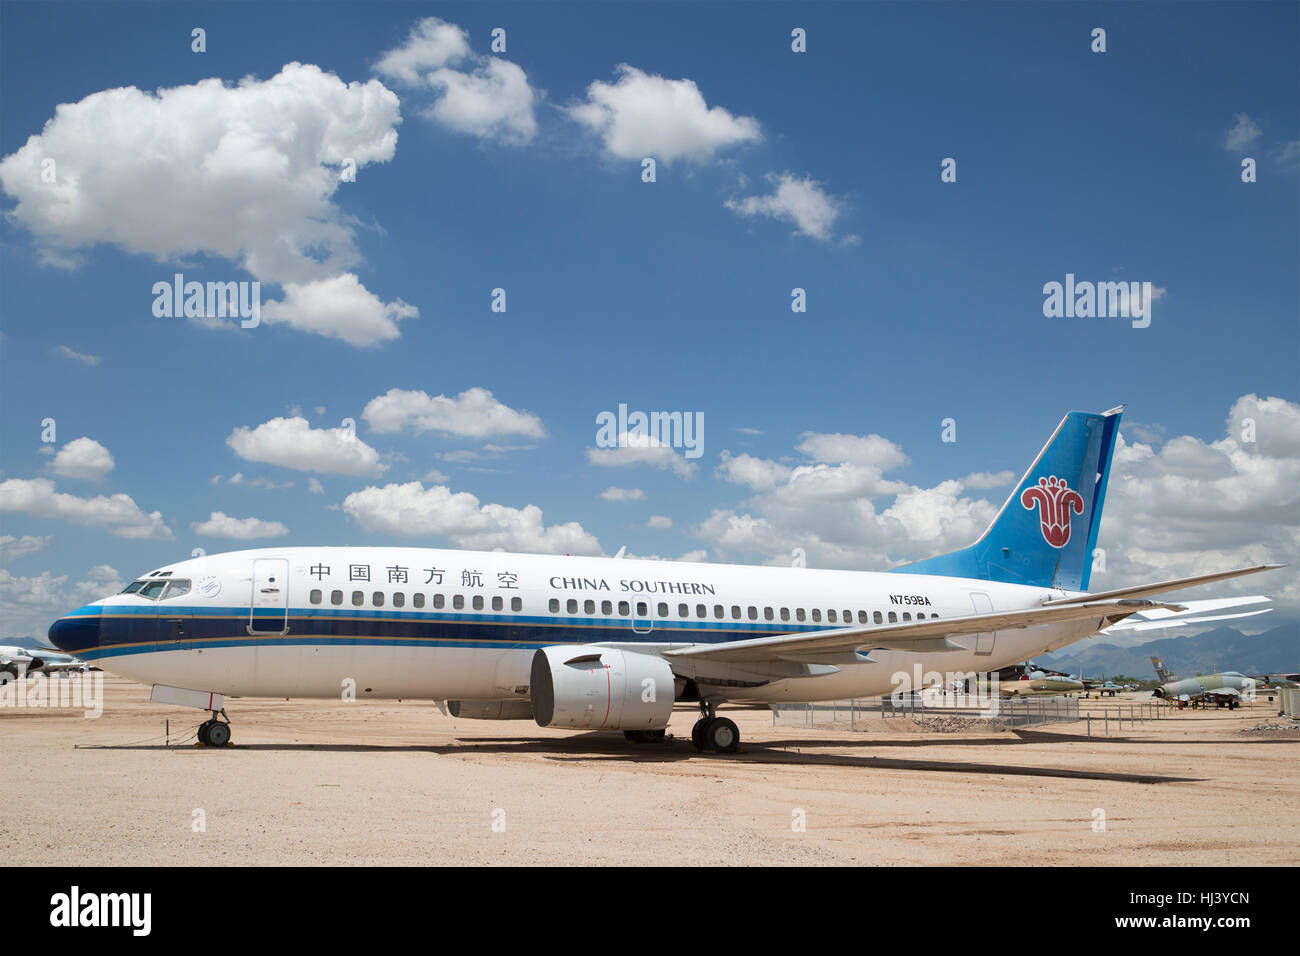 China Southern Boeing 737-300 airliner (1984-1999) on display at Pima Air & Space Museum - Stock Image